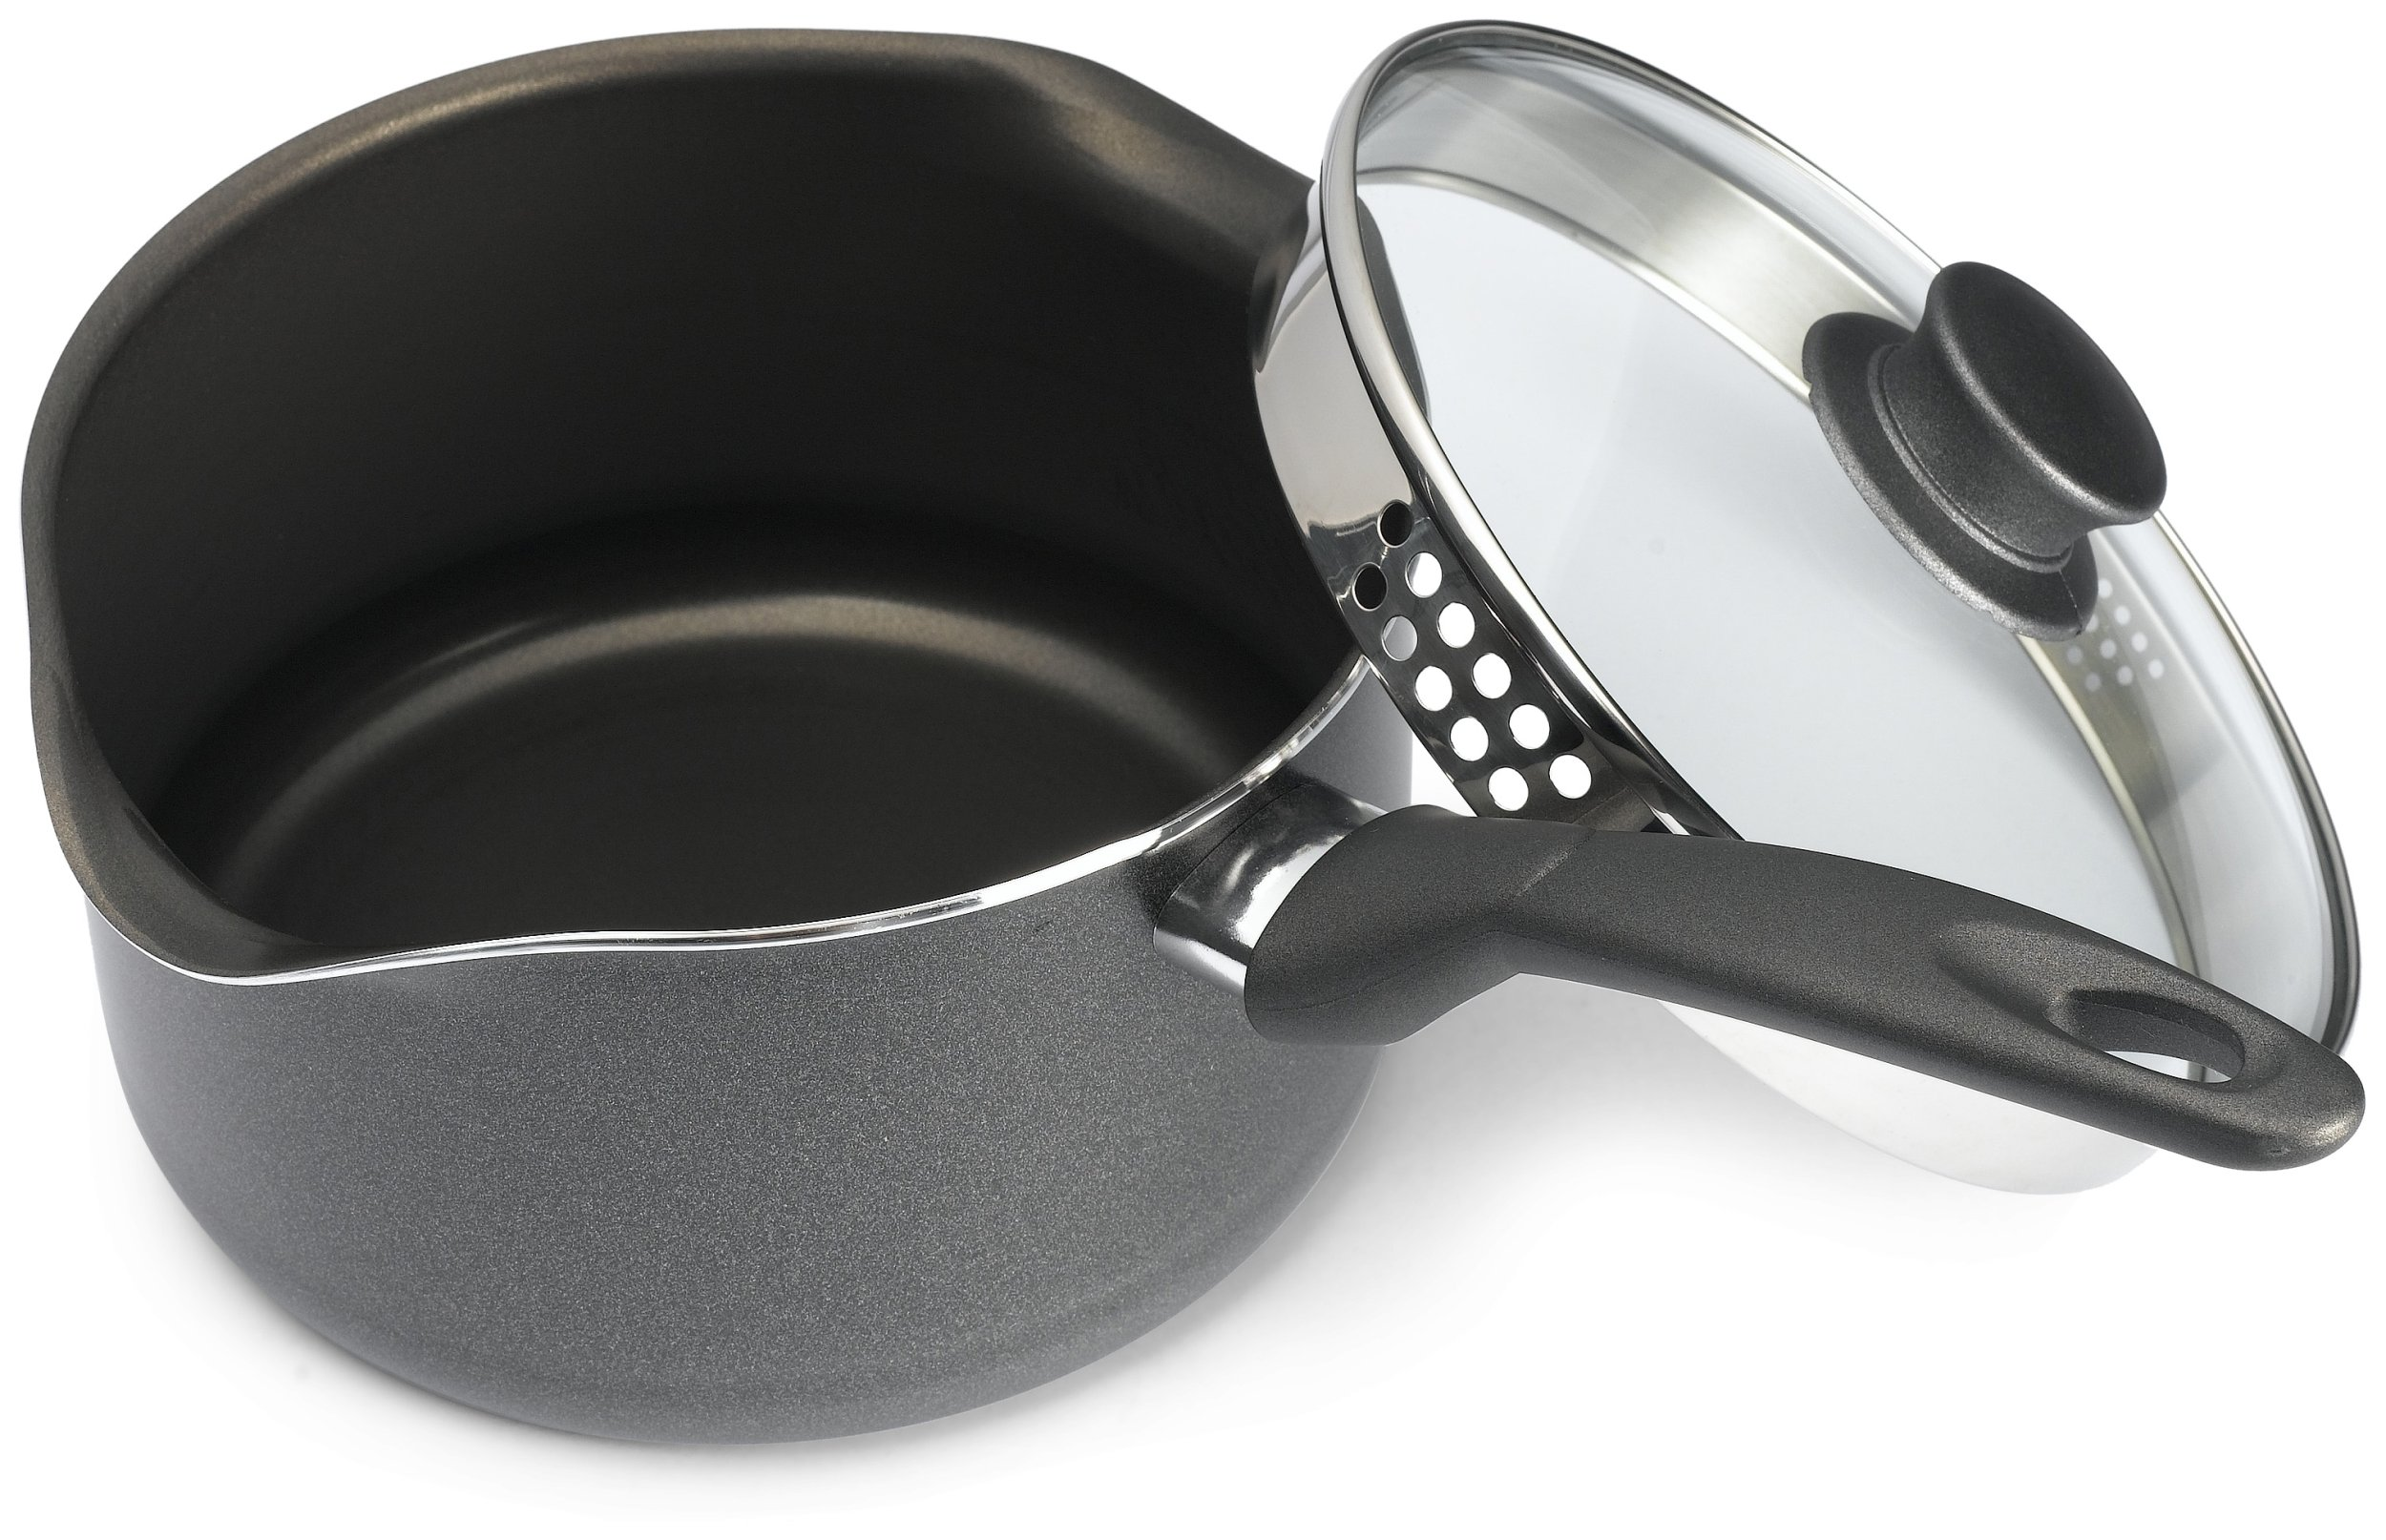 Bialetti 6163 Italian Collection Covered Sauce Pan, 3 Quart, Charcoal